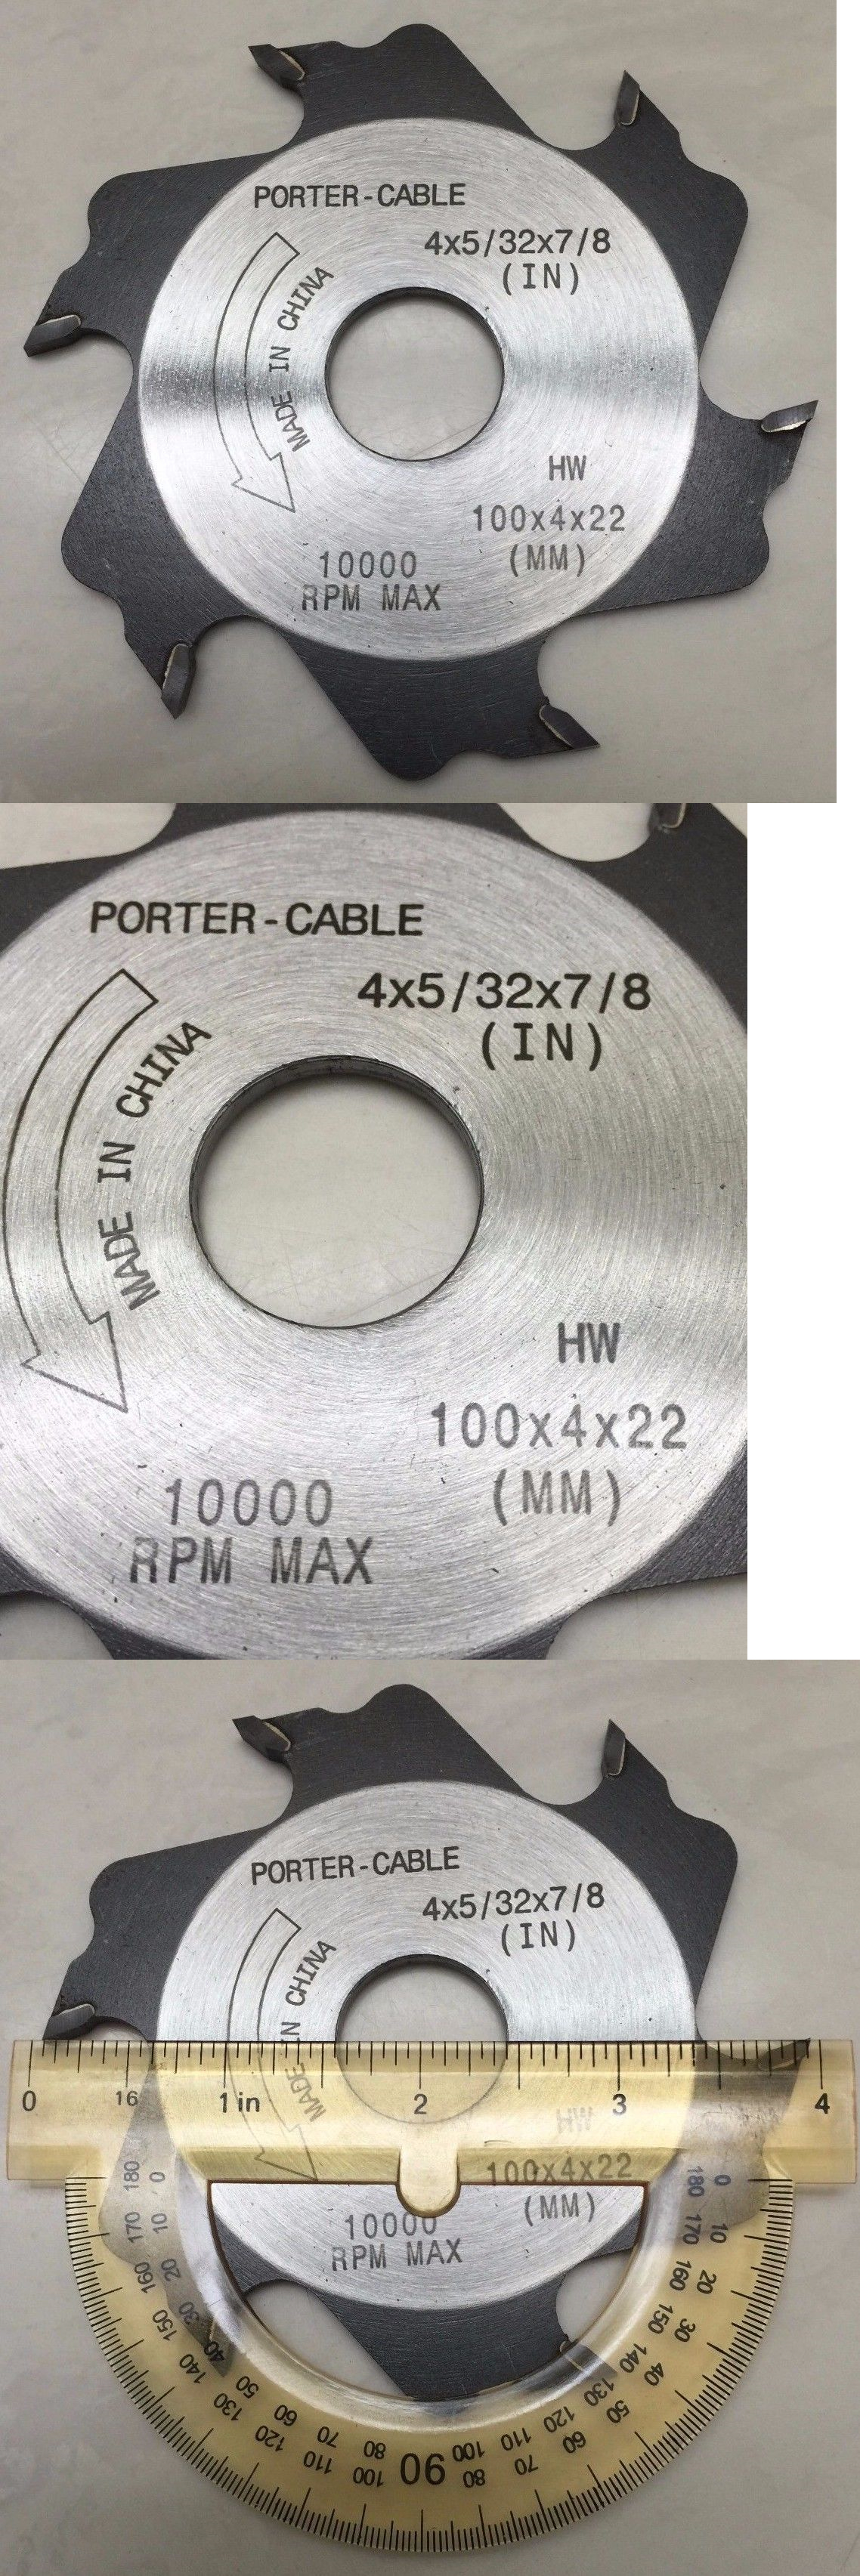 joiners 20780 porter cable 5558 5557 4 plate joiner replacement